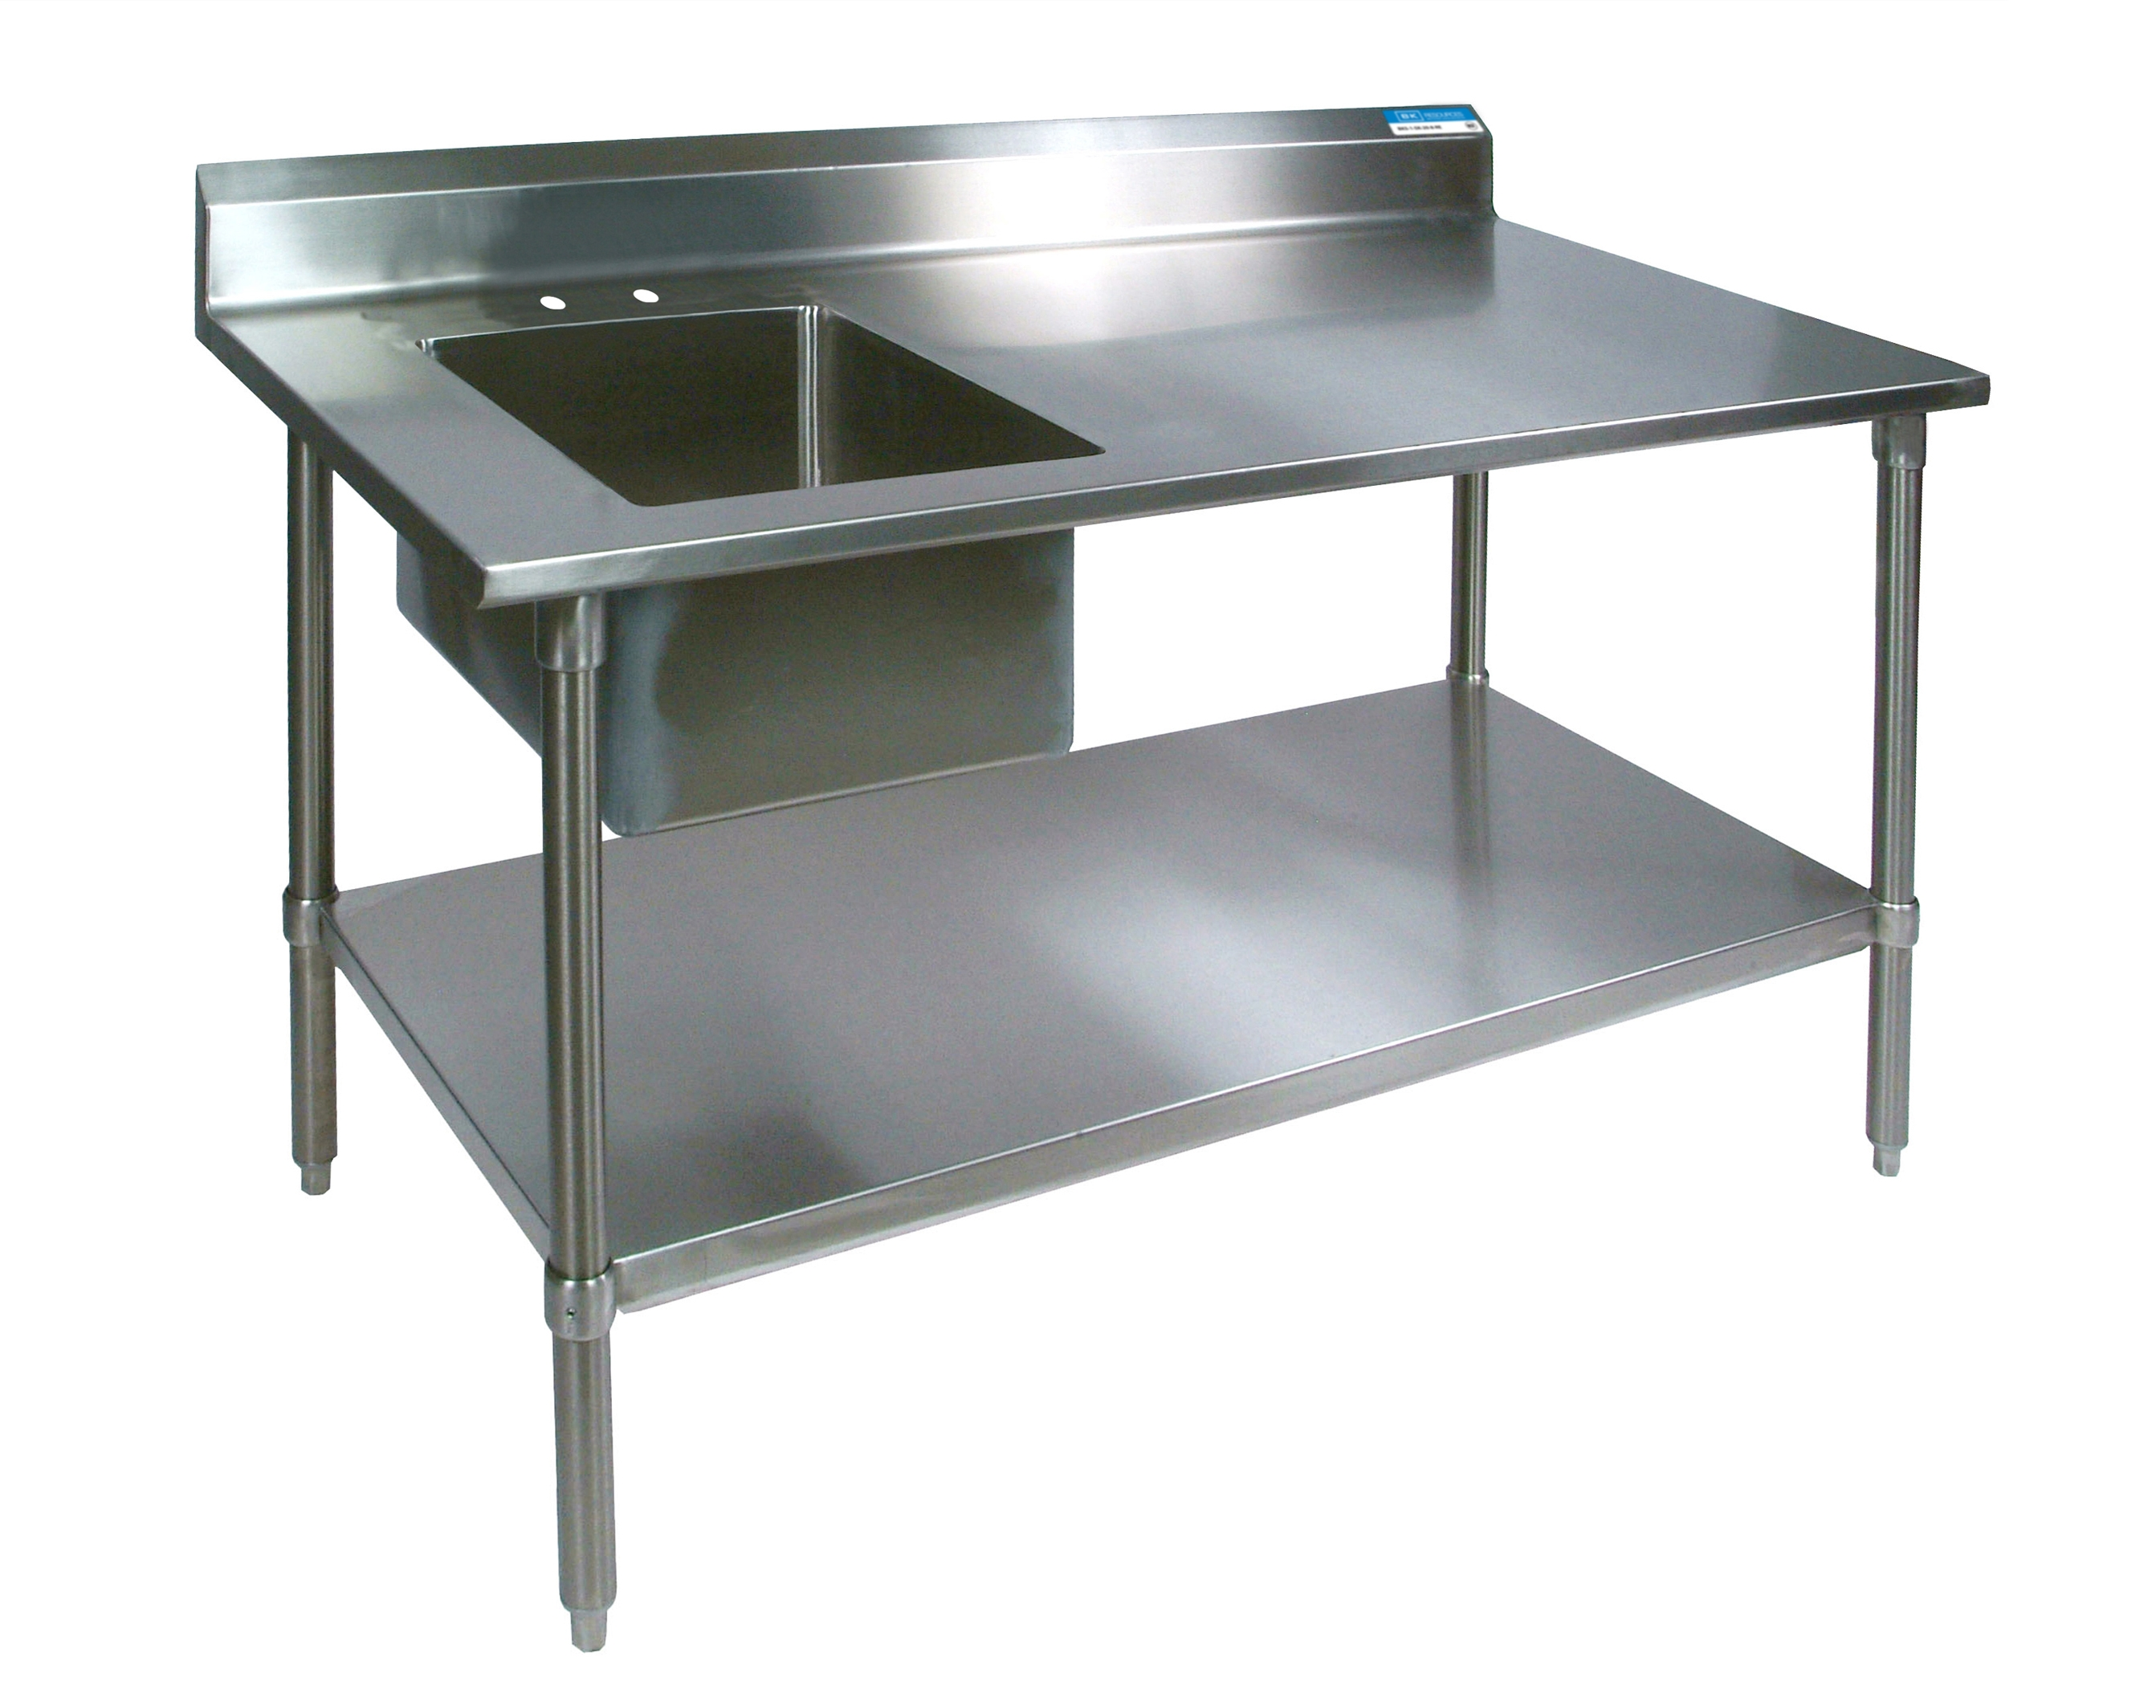 Diversified Woodcrafts Stainless Steel Prep Table, Sink, and Galvanized Undershelf